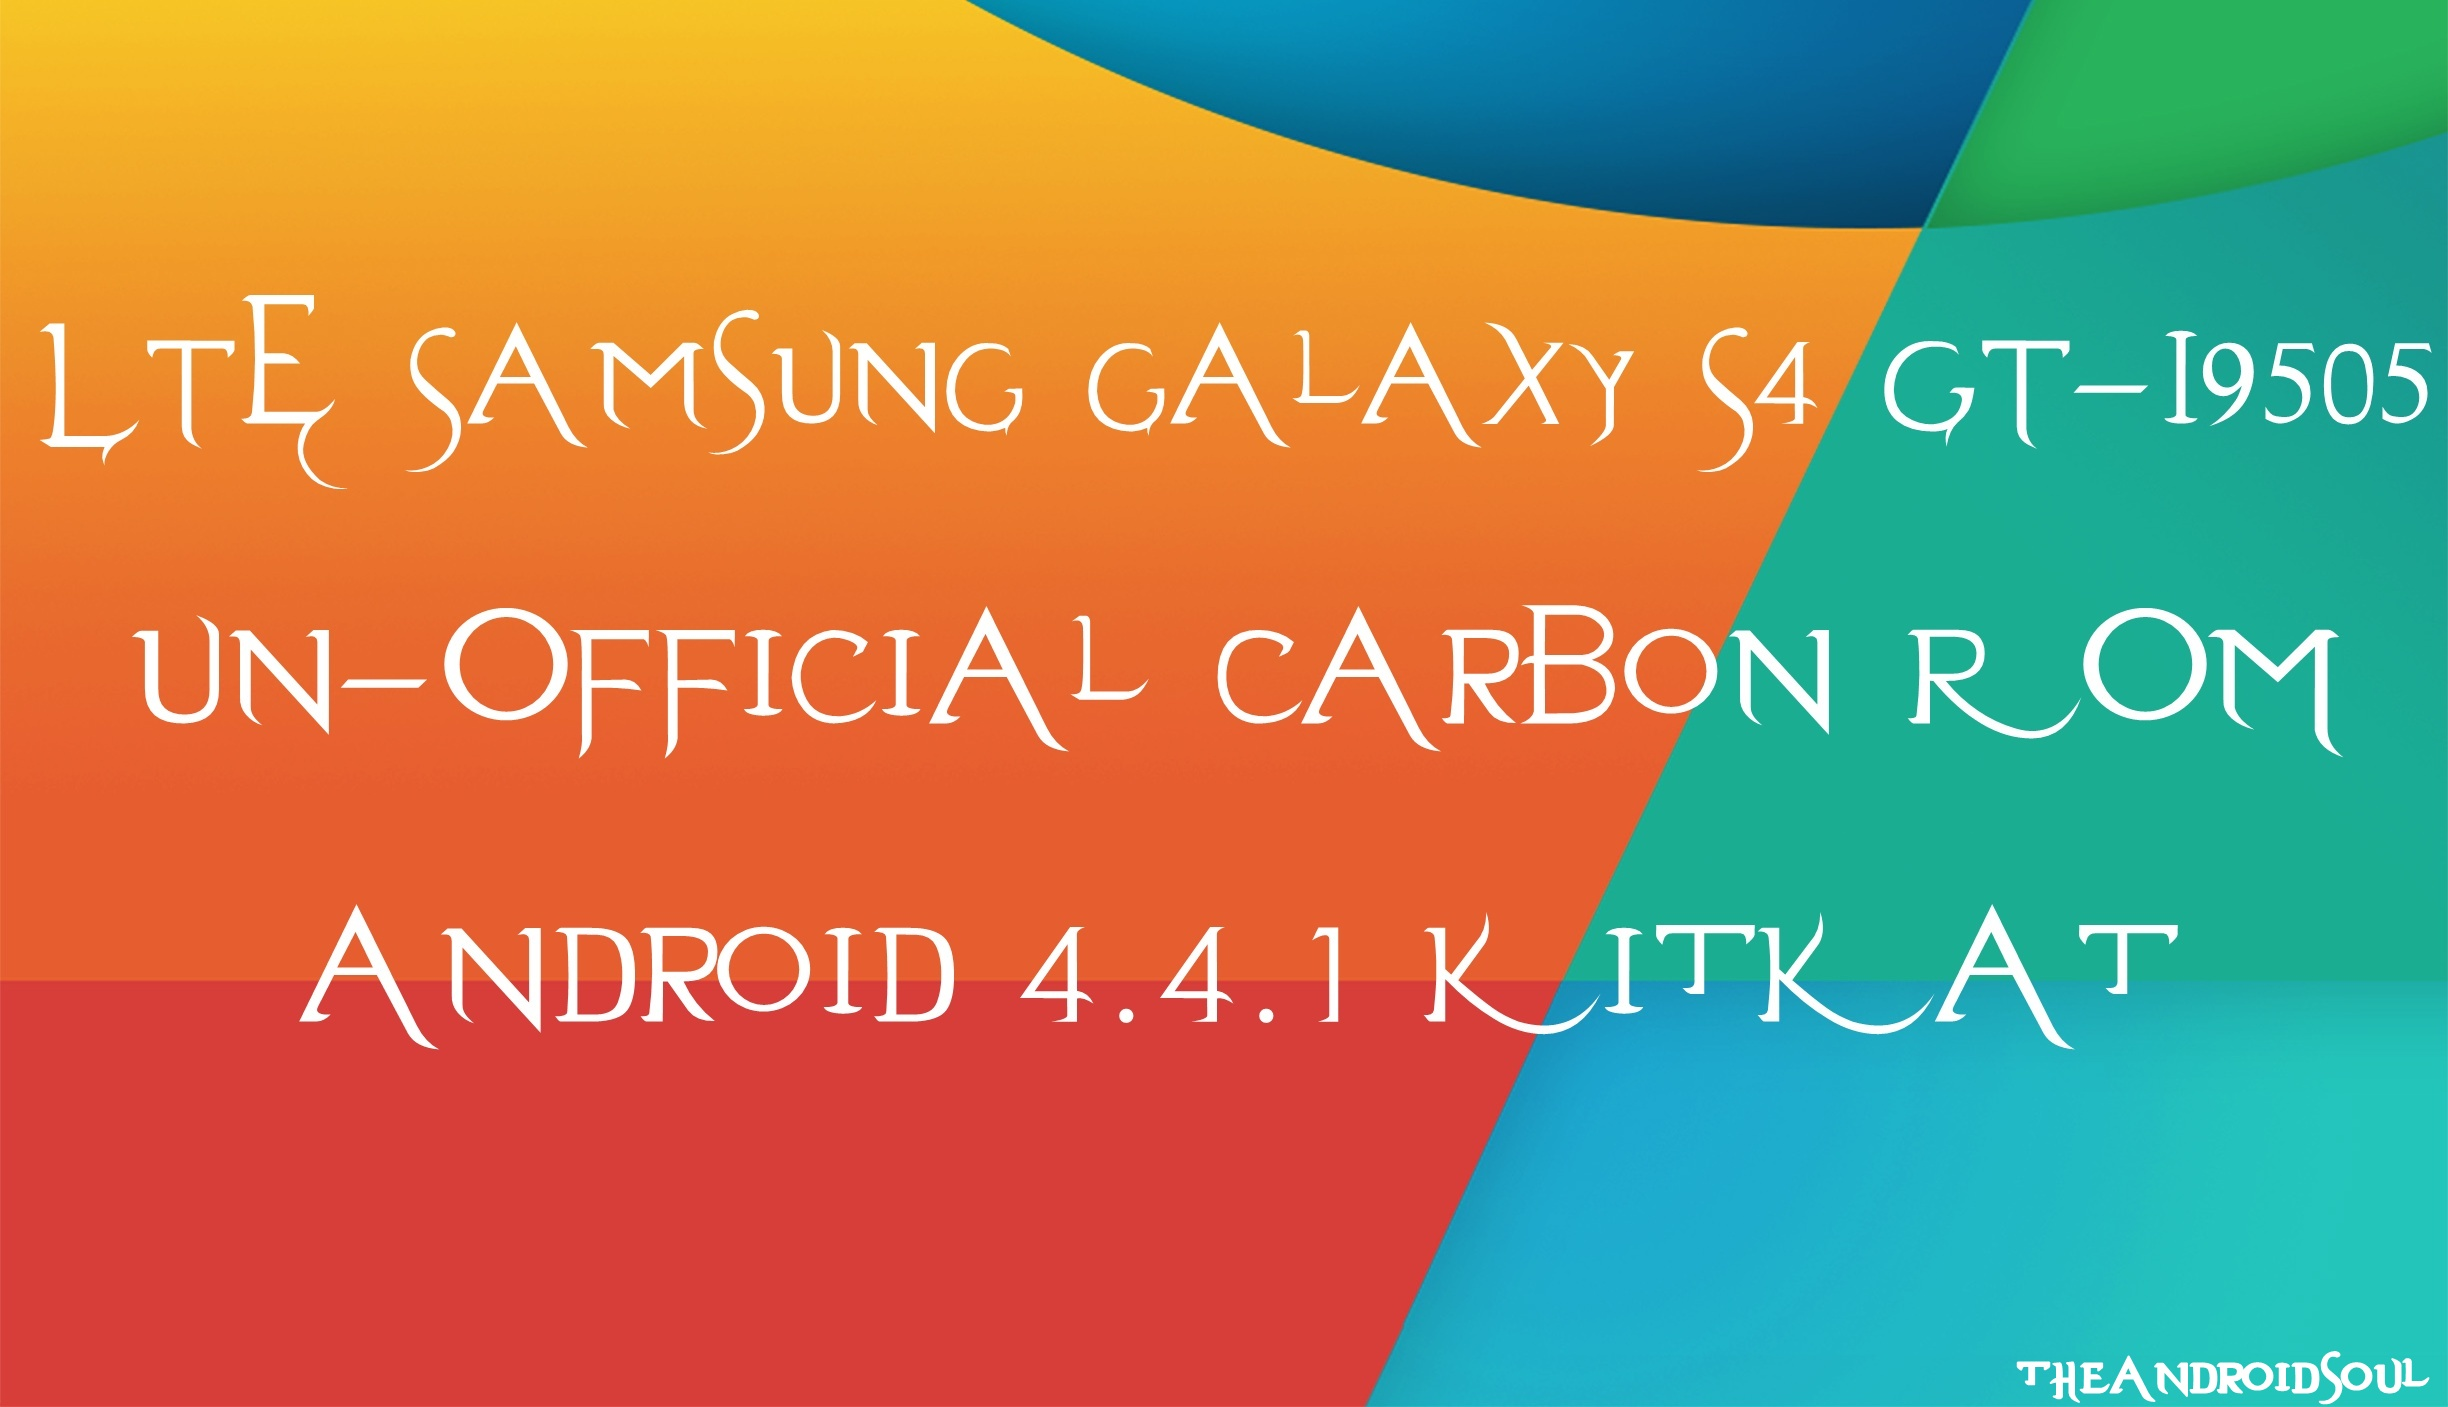 Update Galaxy S4 LTE to latest Android 4 4 1 KitKat with Carbon ROM